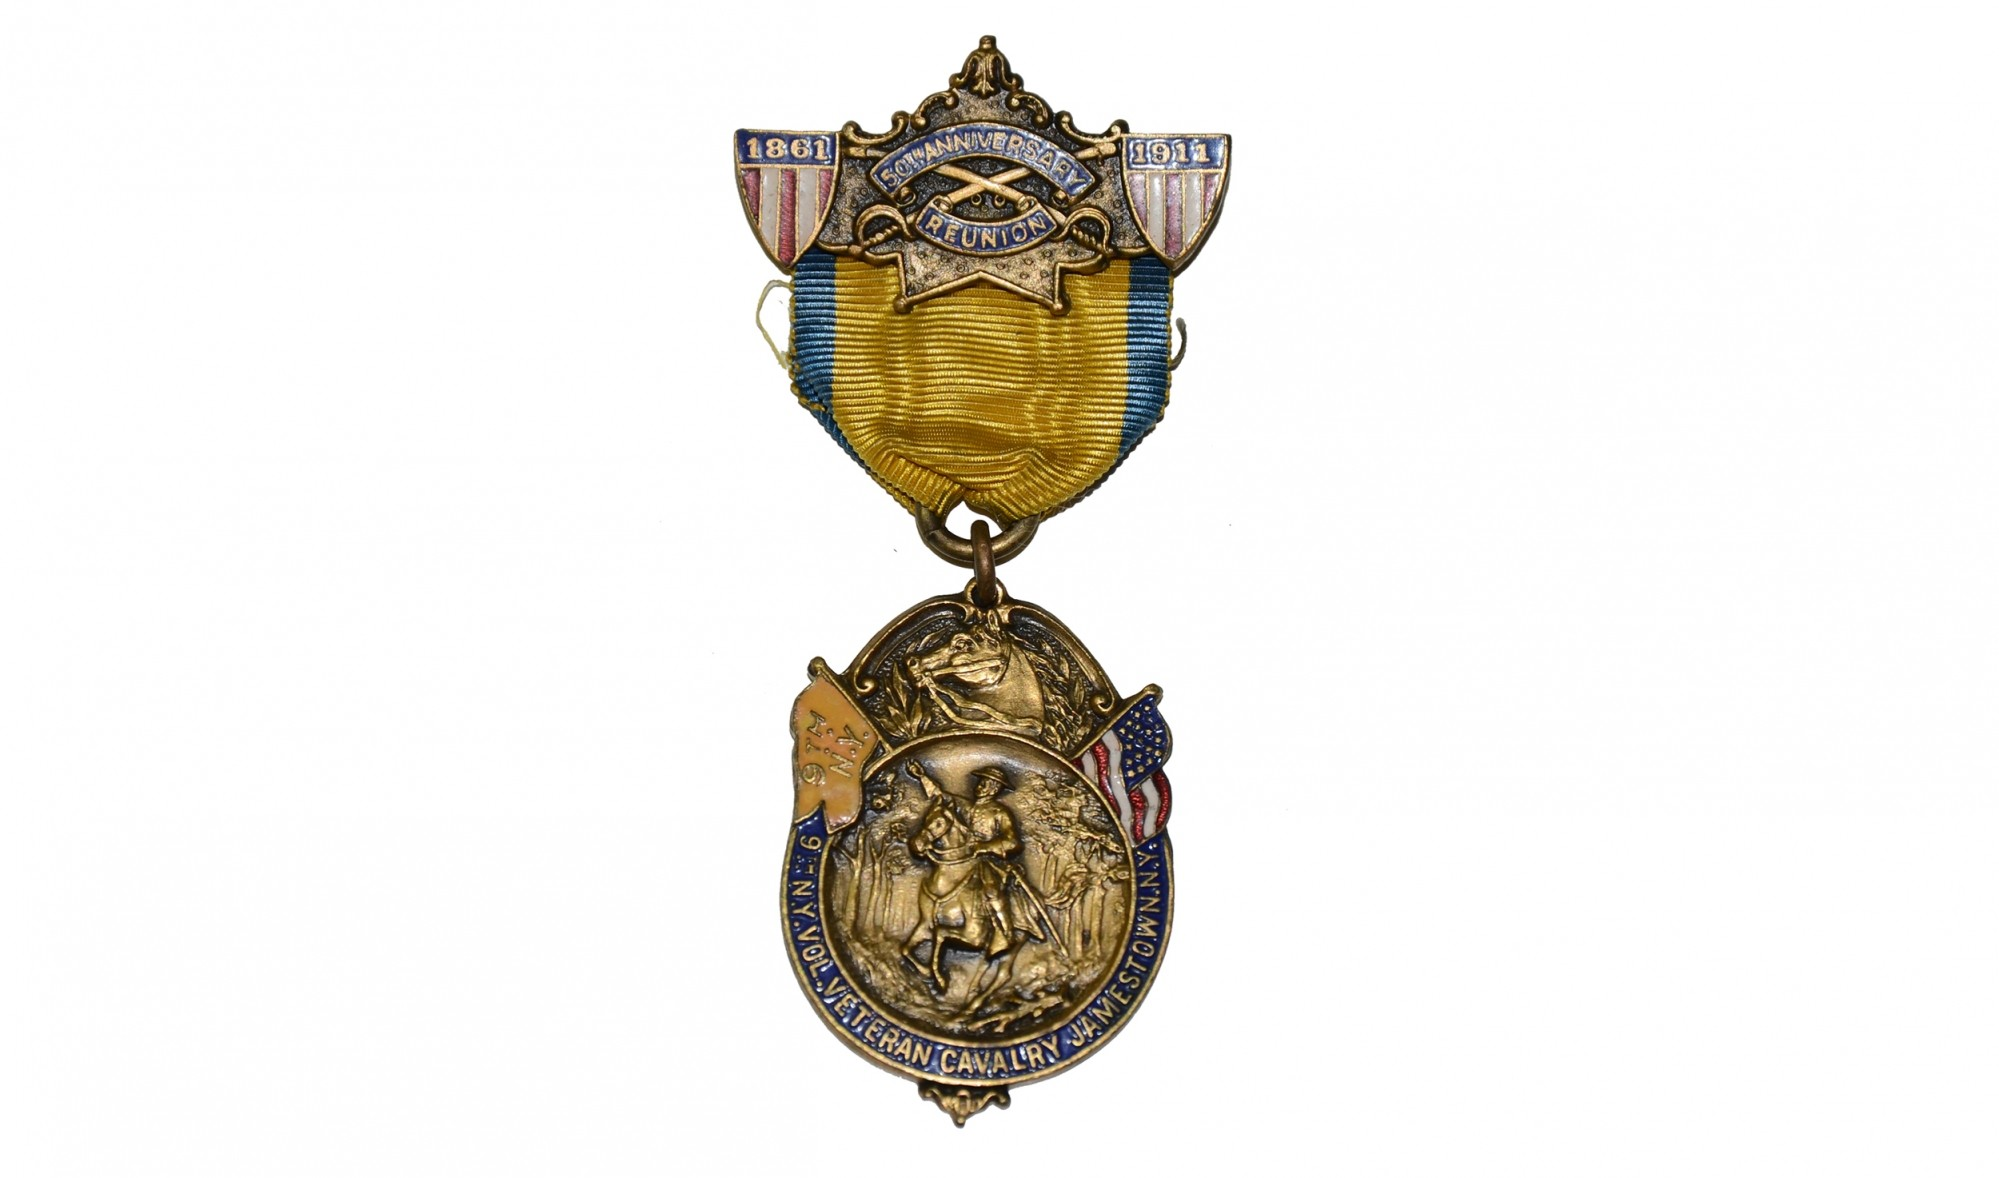 1911 BADGE FOR THE 9TH NEW YORK CAVALRY